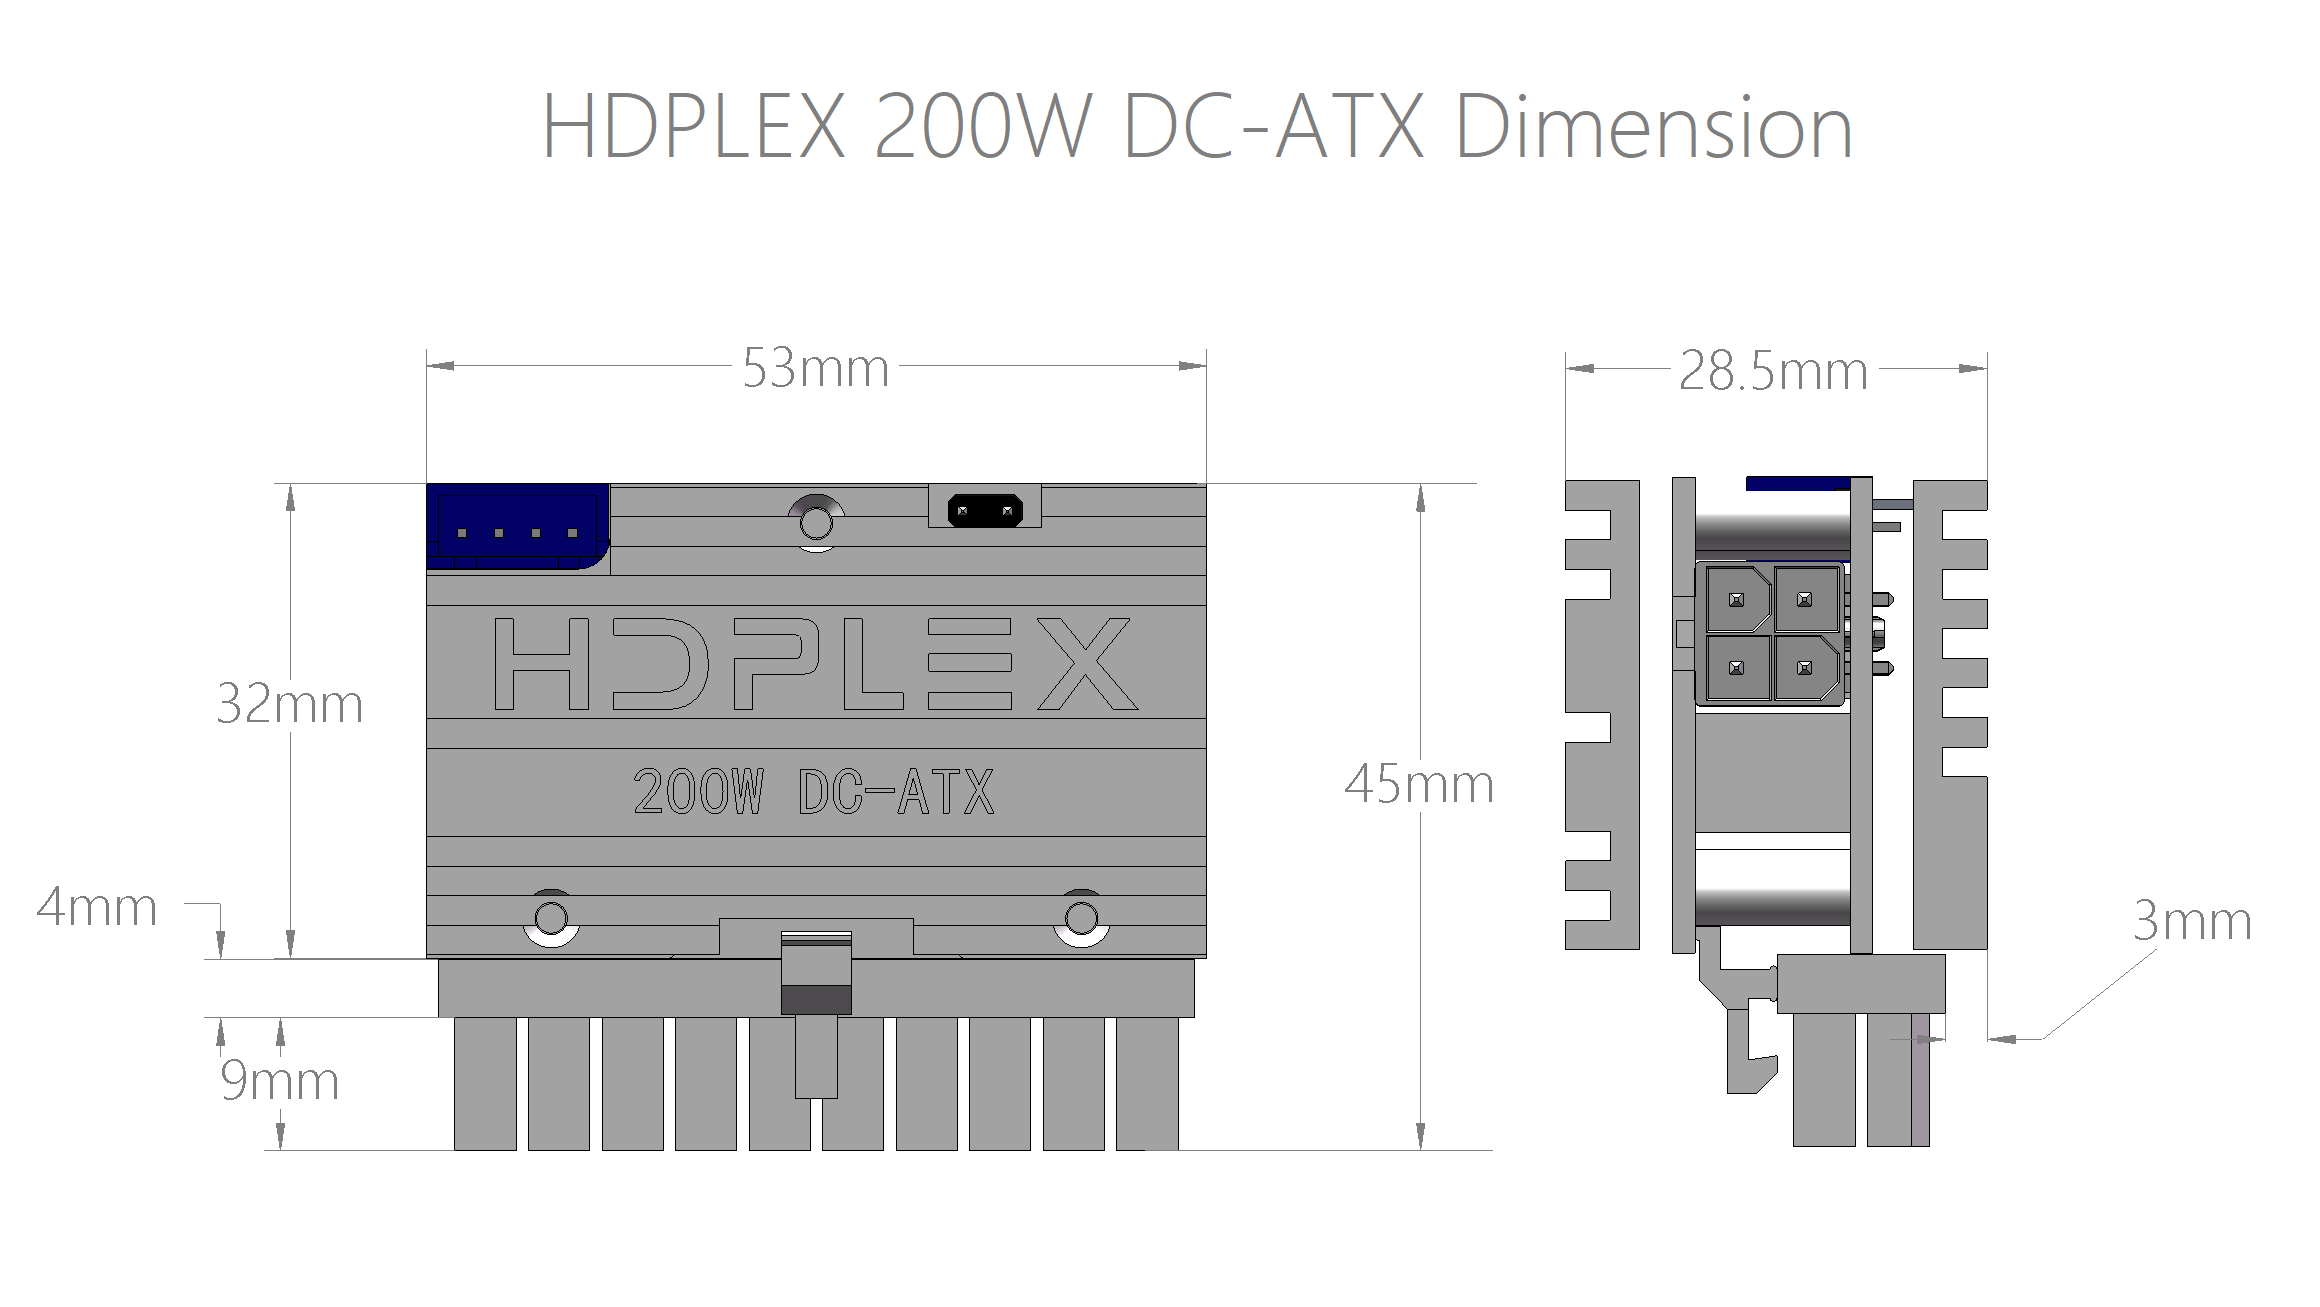 HDPLEX 200WDC-ATX Dimension